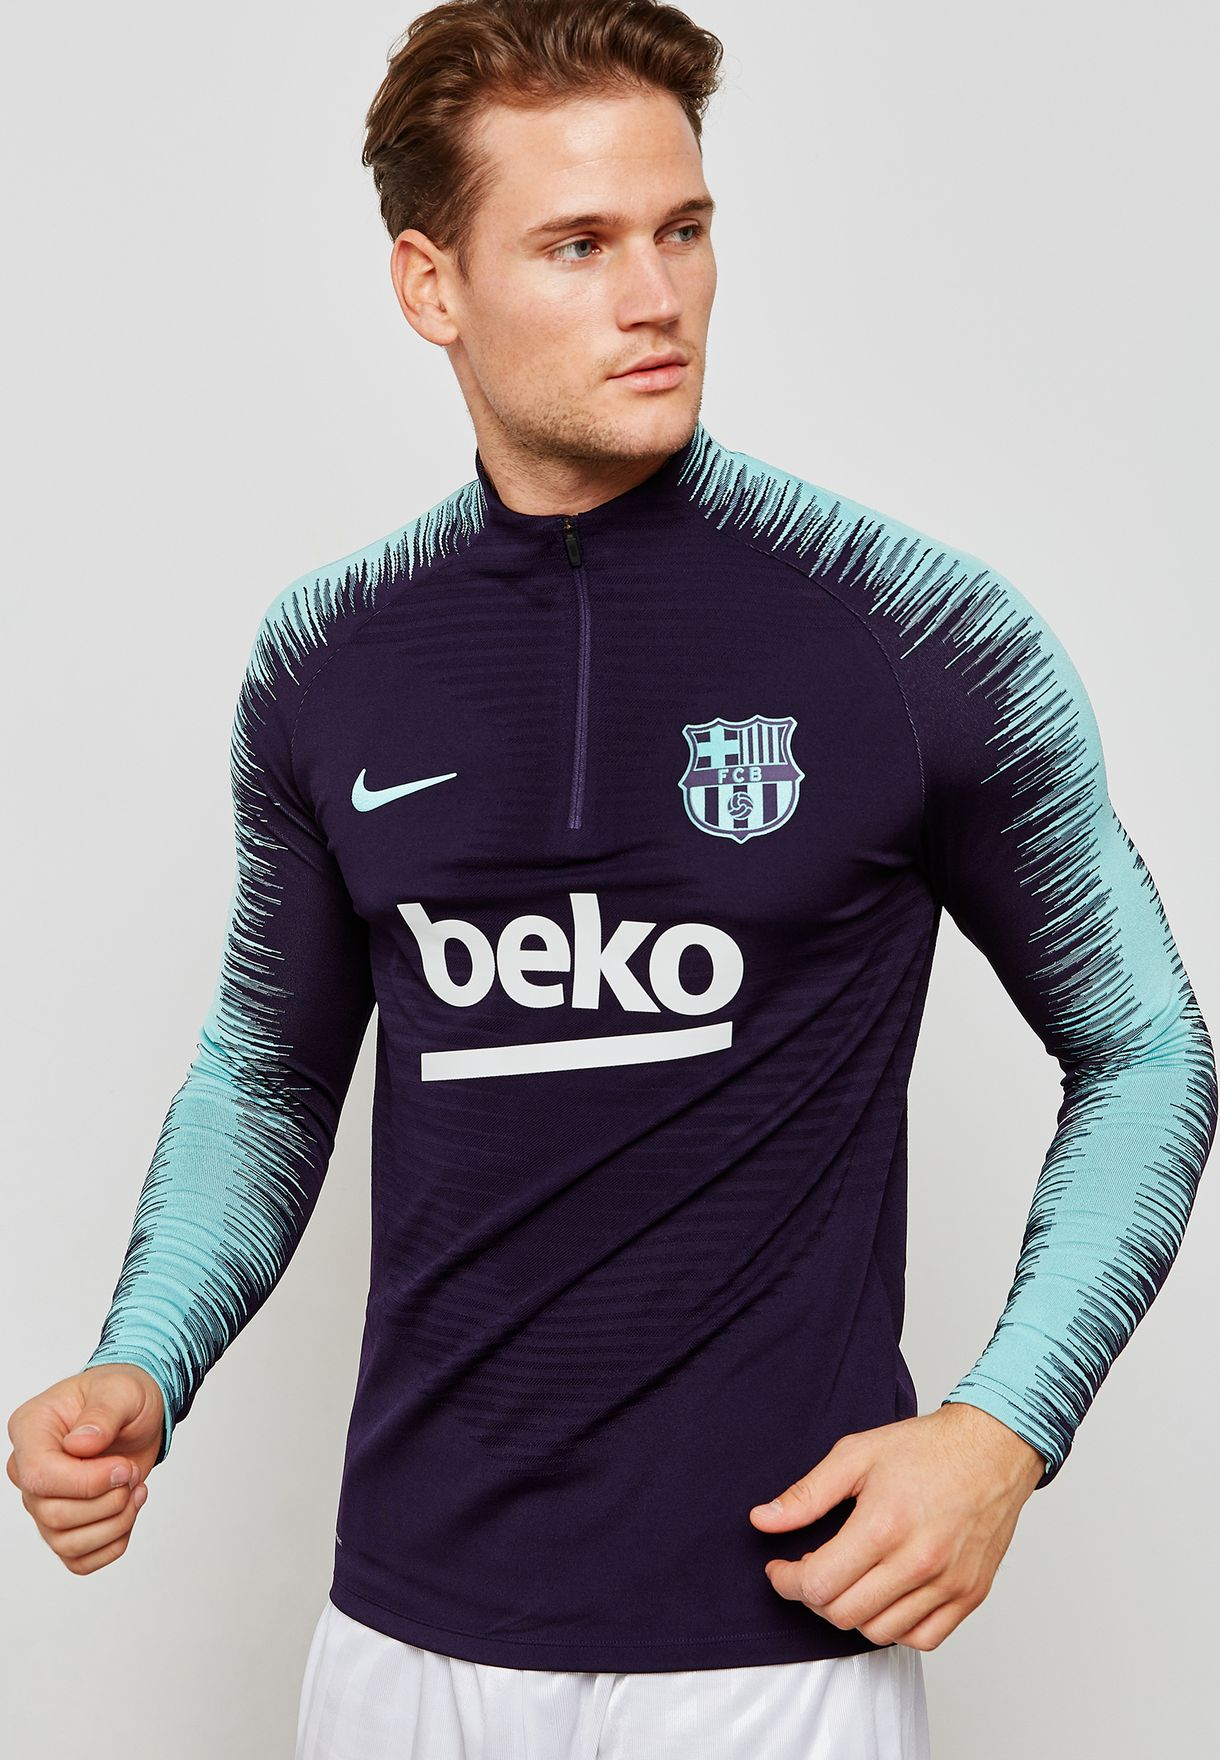 Ser amado Aviación Pence  Buy Nike purple FC Barcelona Aeroswift Dril Top for Men in MENA, Worldwide  | 894188-525